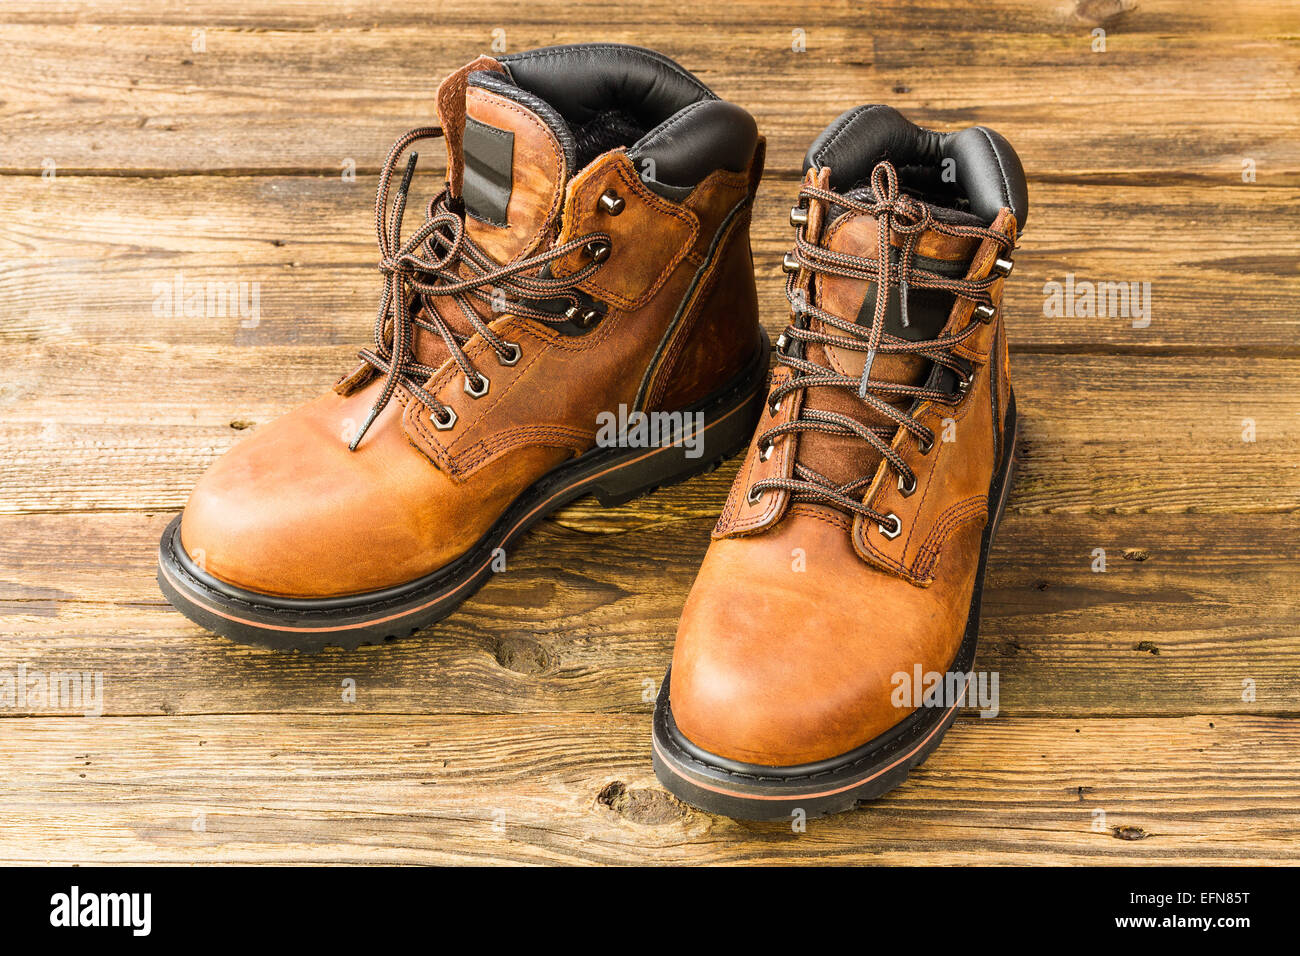 brown men's boots on wooden background Stock Photo: 78528740